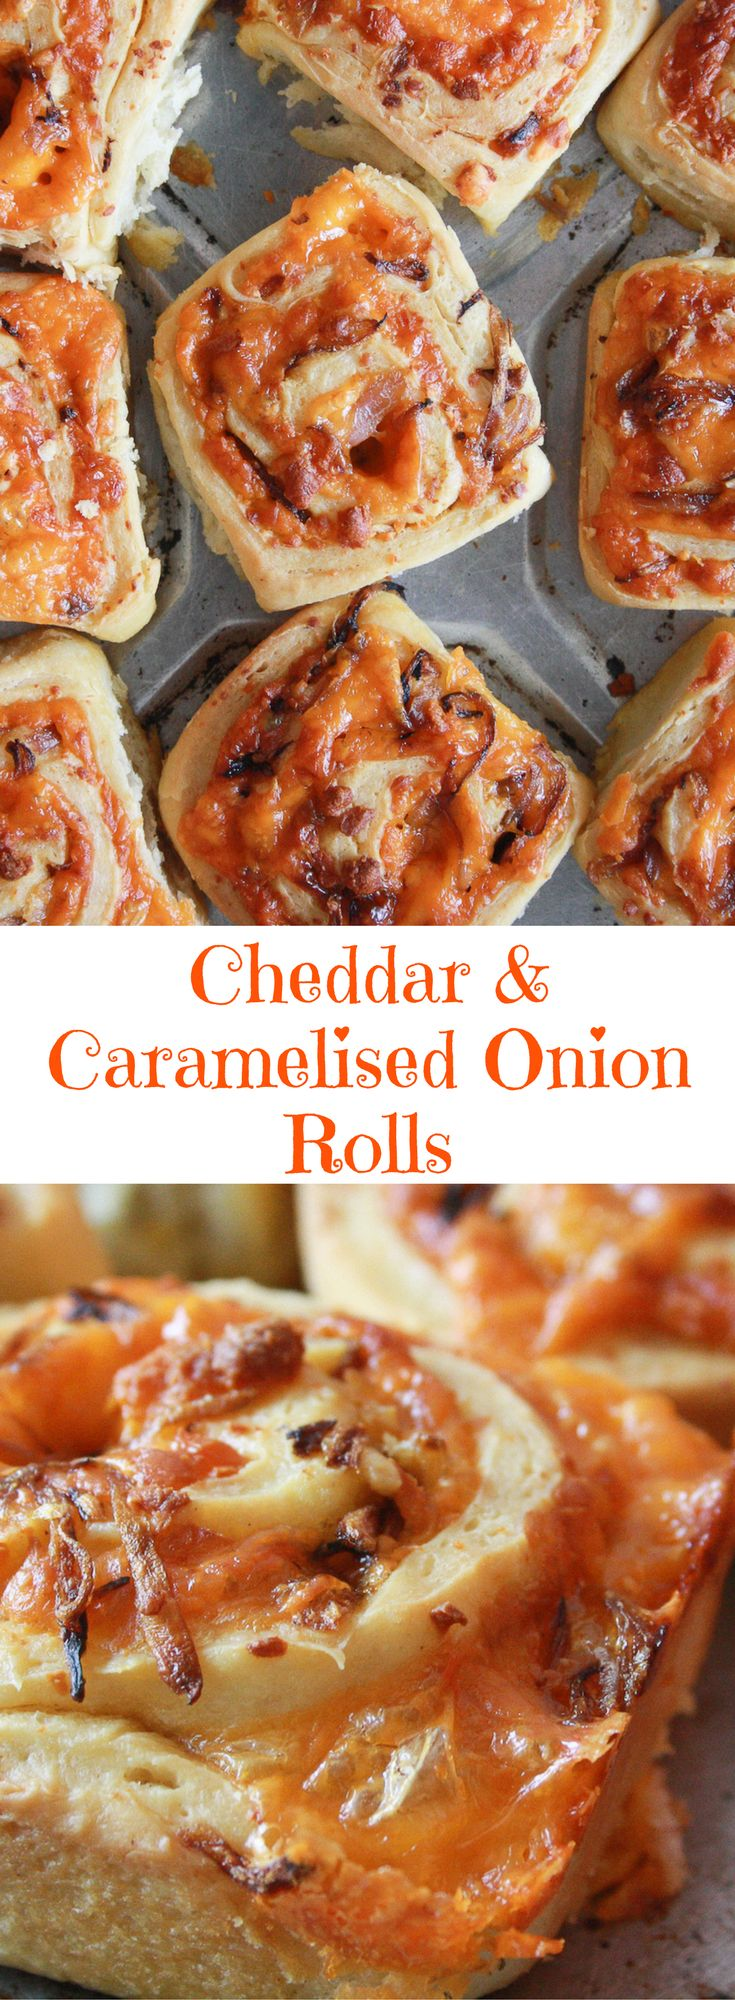 Soft and fluffy, eggless, savoury rolls filled with orange cheddar and caramelised onions!